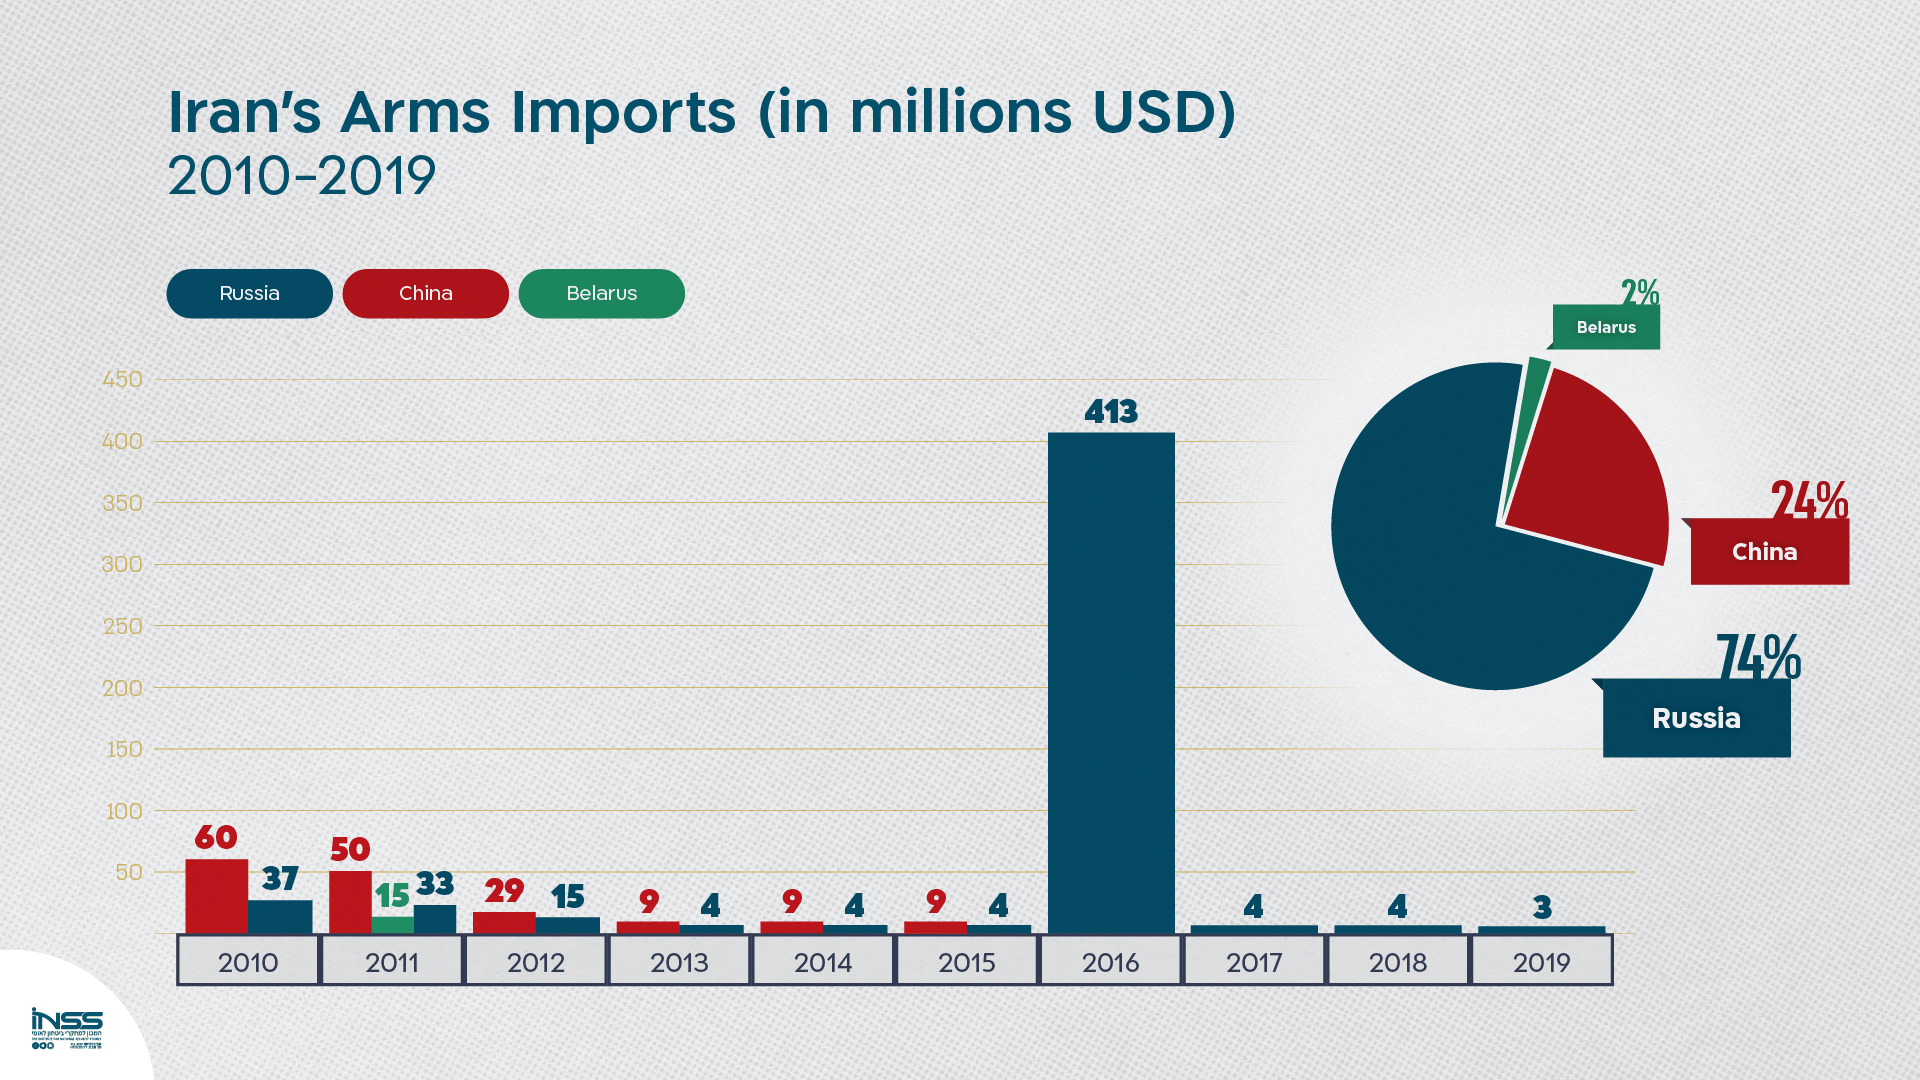 Figure 1: Arms exports to Iran in millions USD, 2010-2019 |